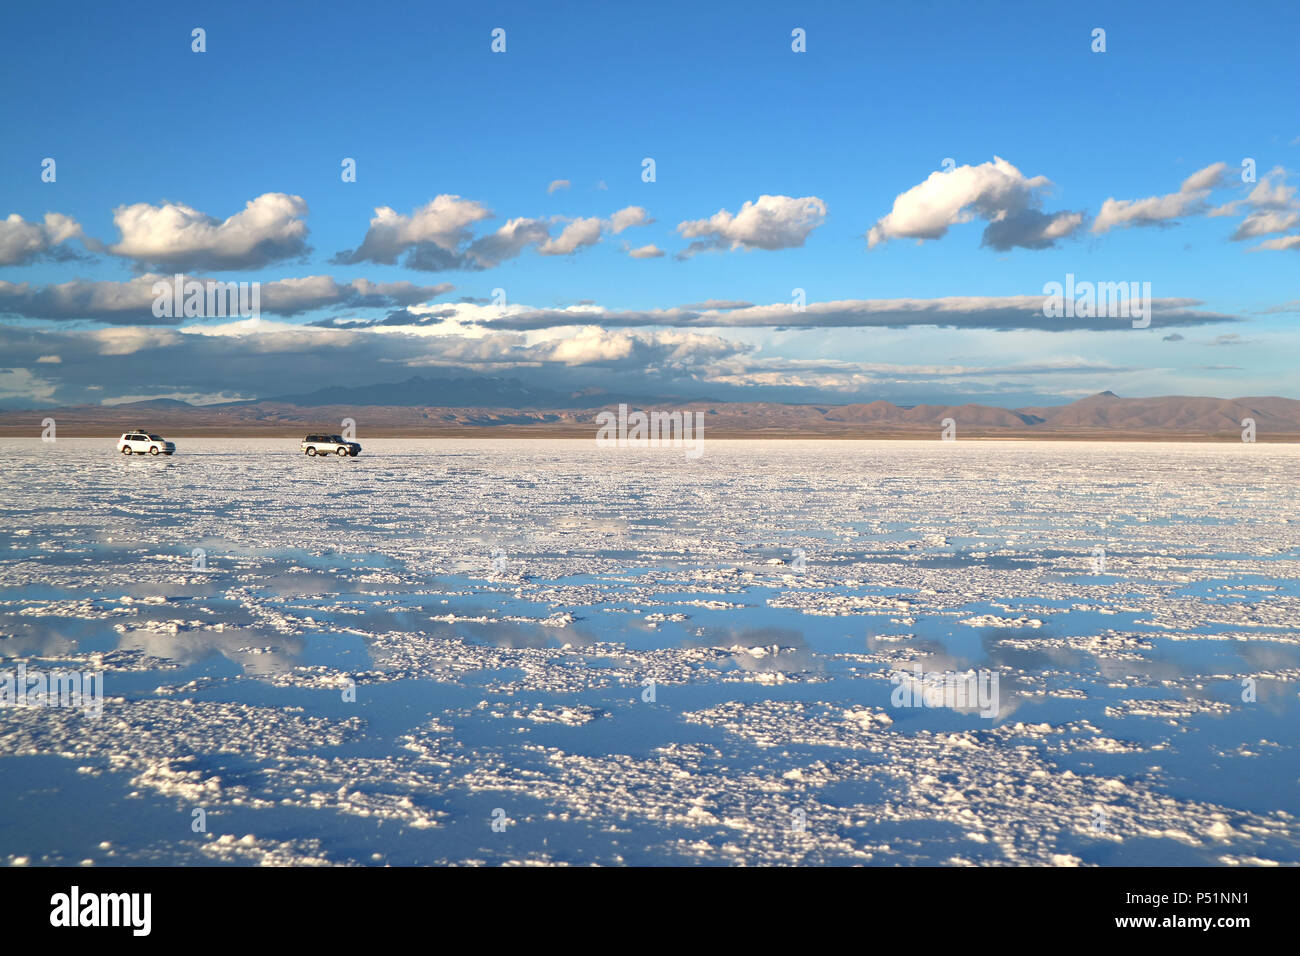 Uyuni Salts Flats or Salar de Uyuni on the end of rainy season, Bolivia, South America - Stock Image